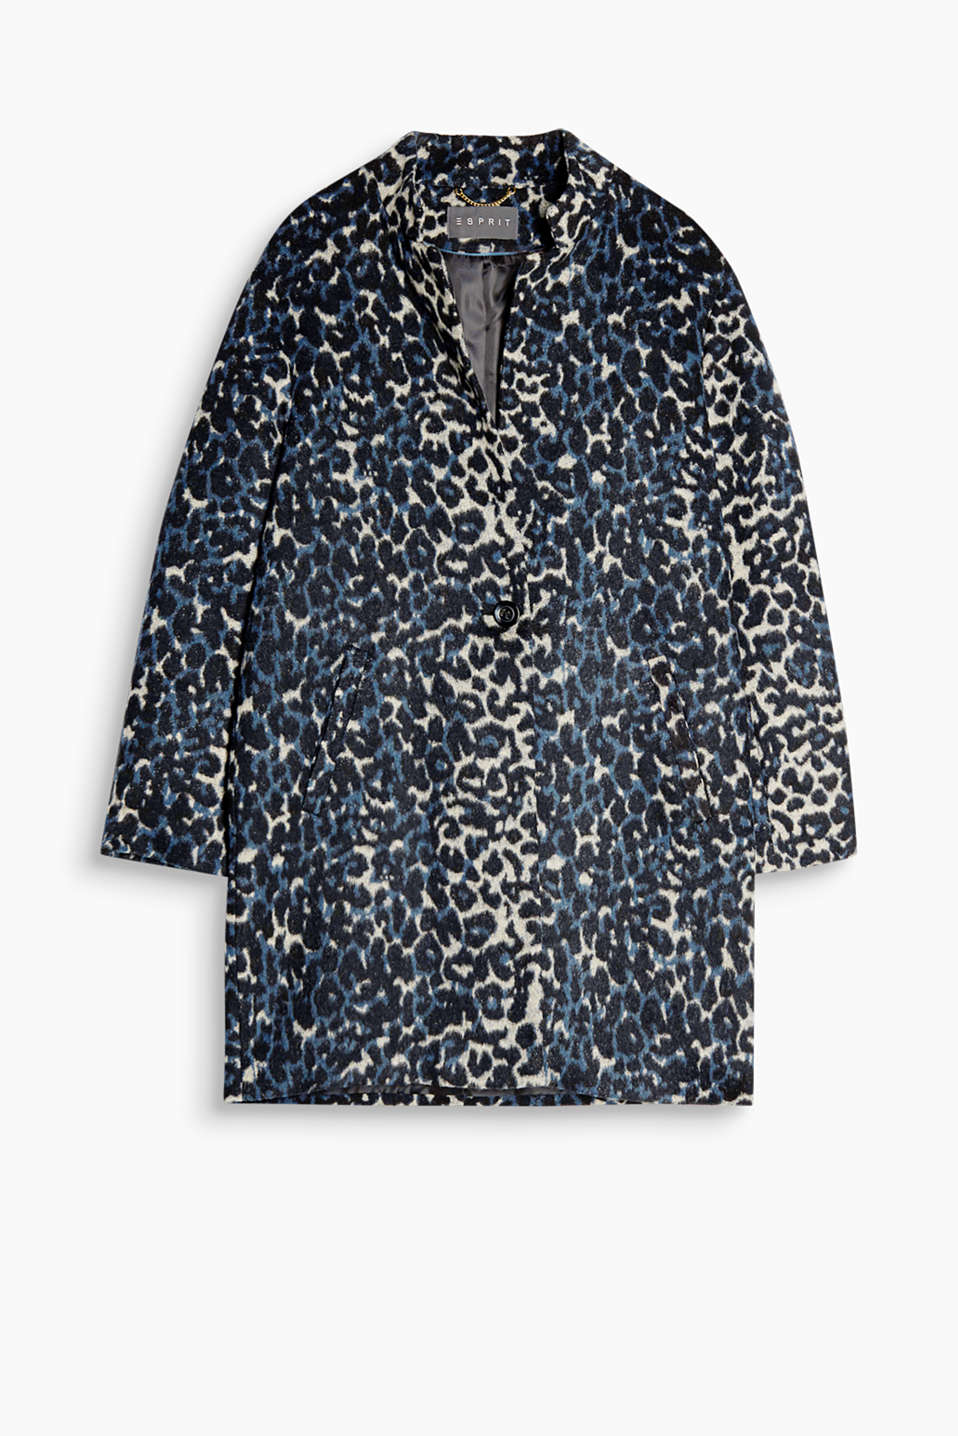 Made of a fabric blend with wool: coat with a stylish leopard print